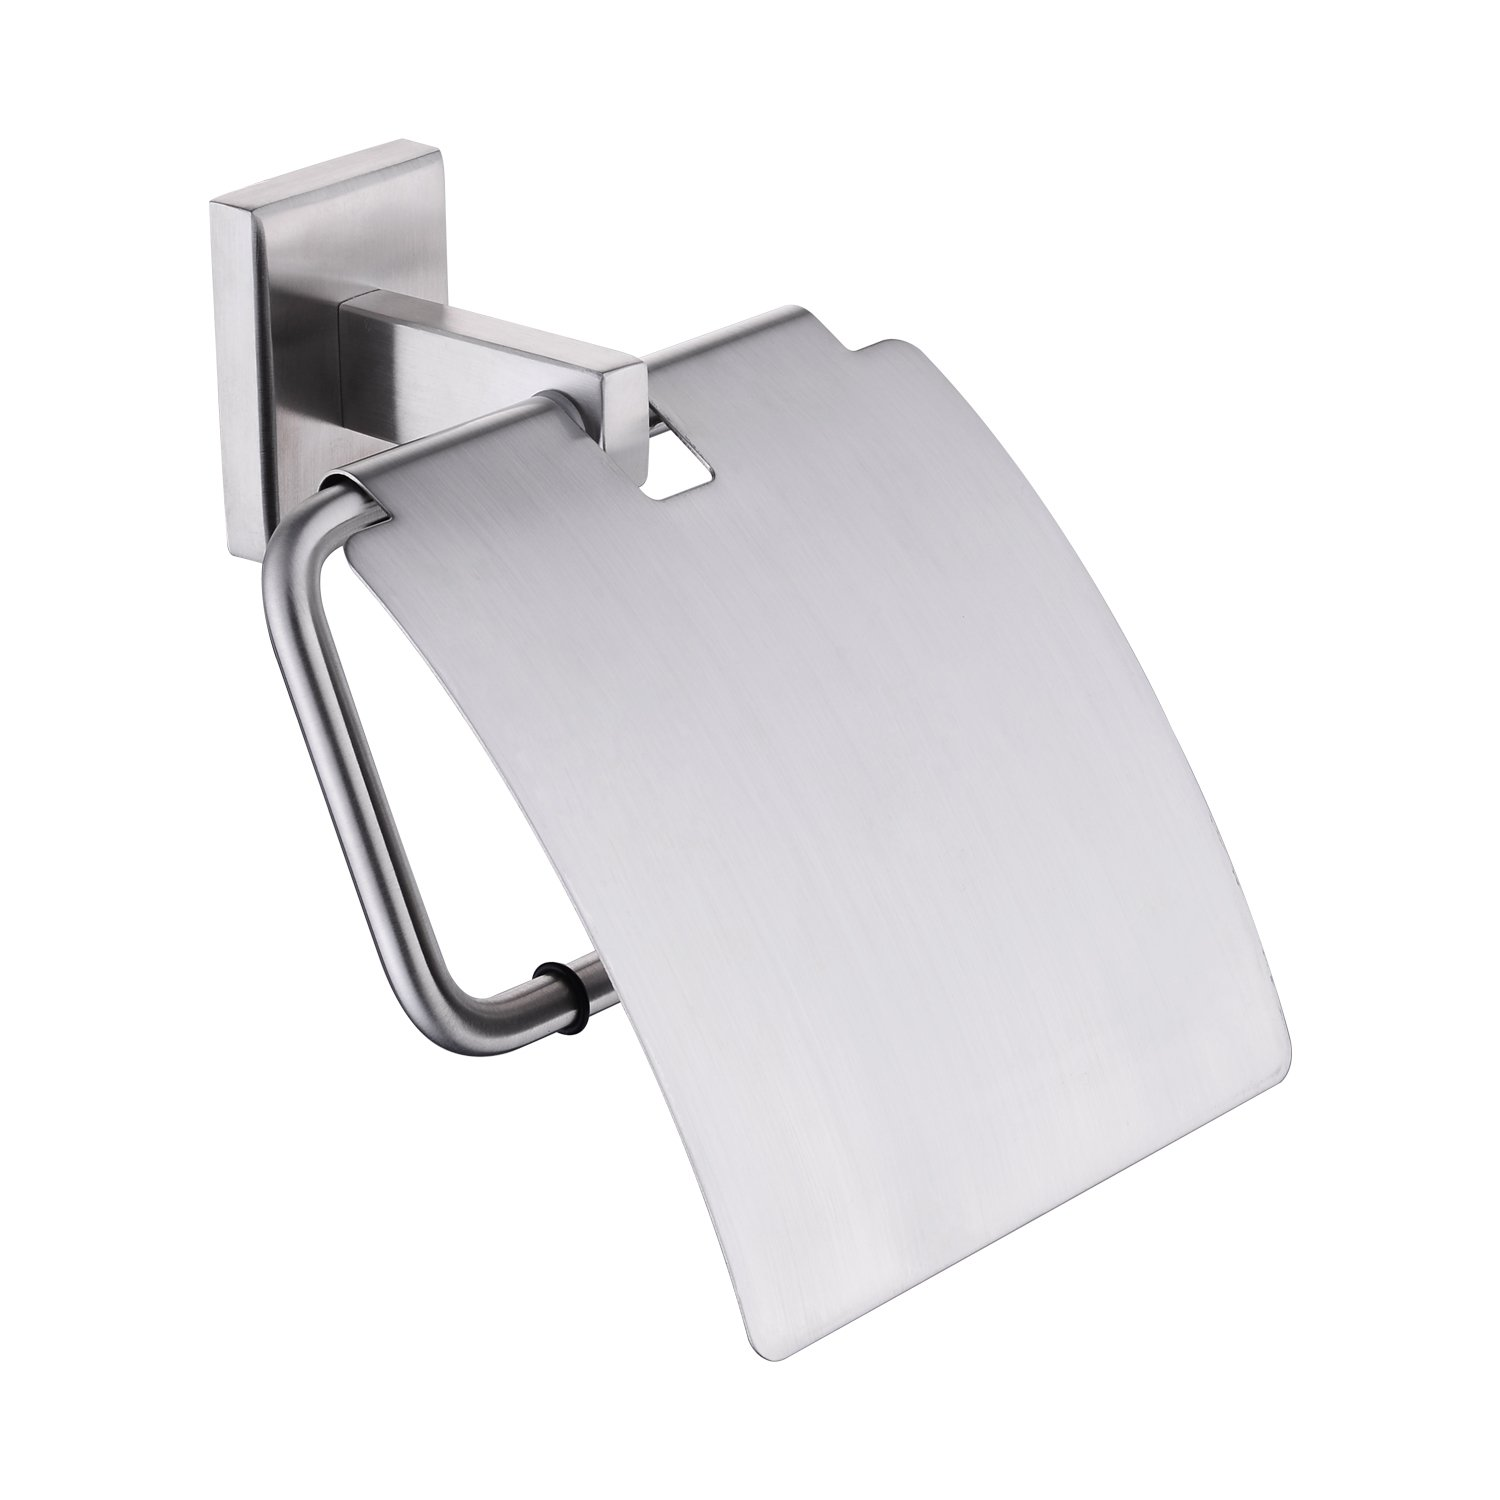 BULUXE SUS304 Stainless Steel Bathroom Lavatory Paper Holder Tissue Holder Wall Mount, Brushed Nickel